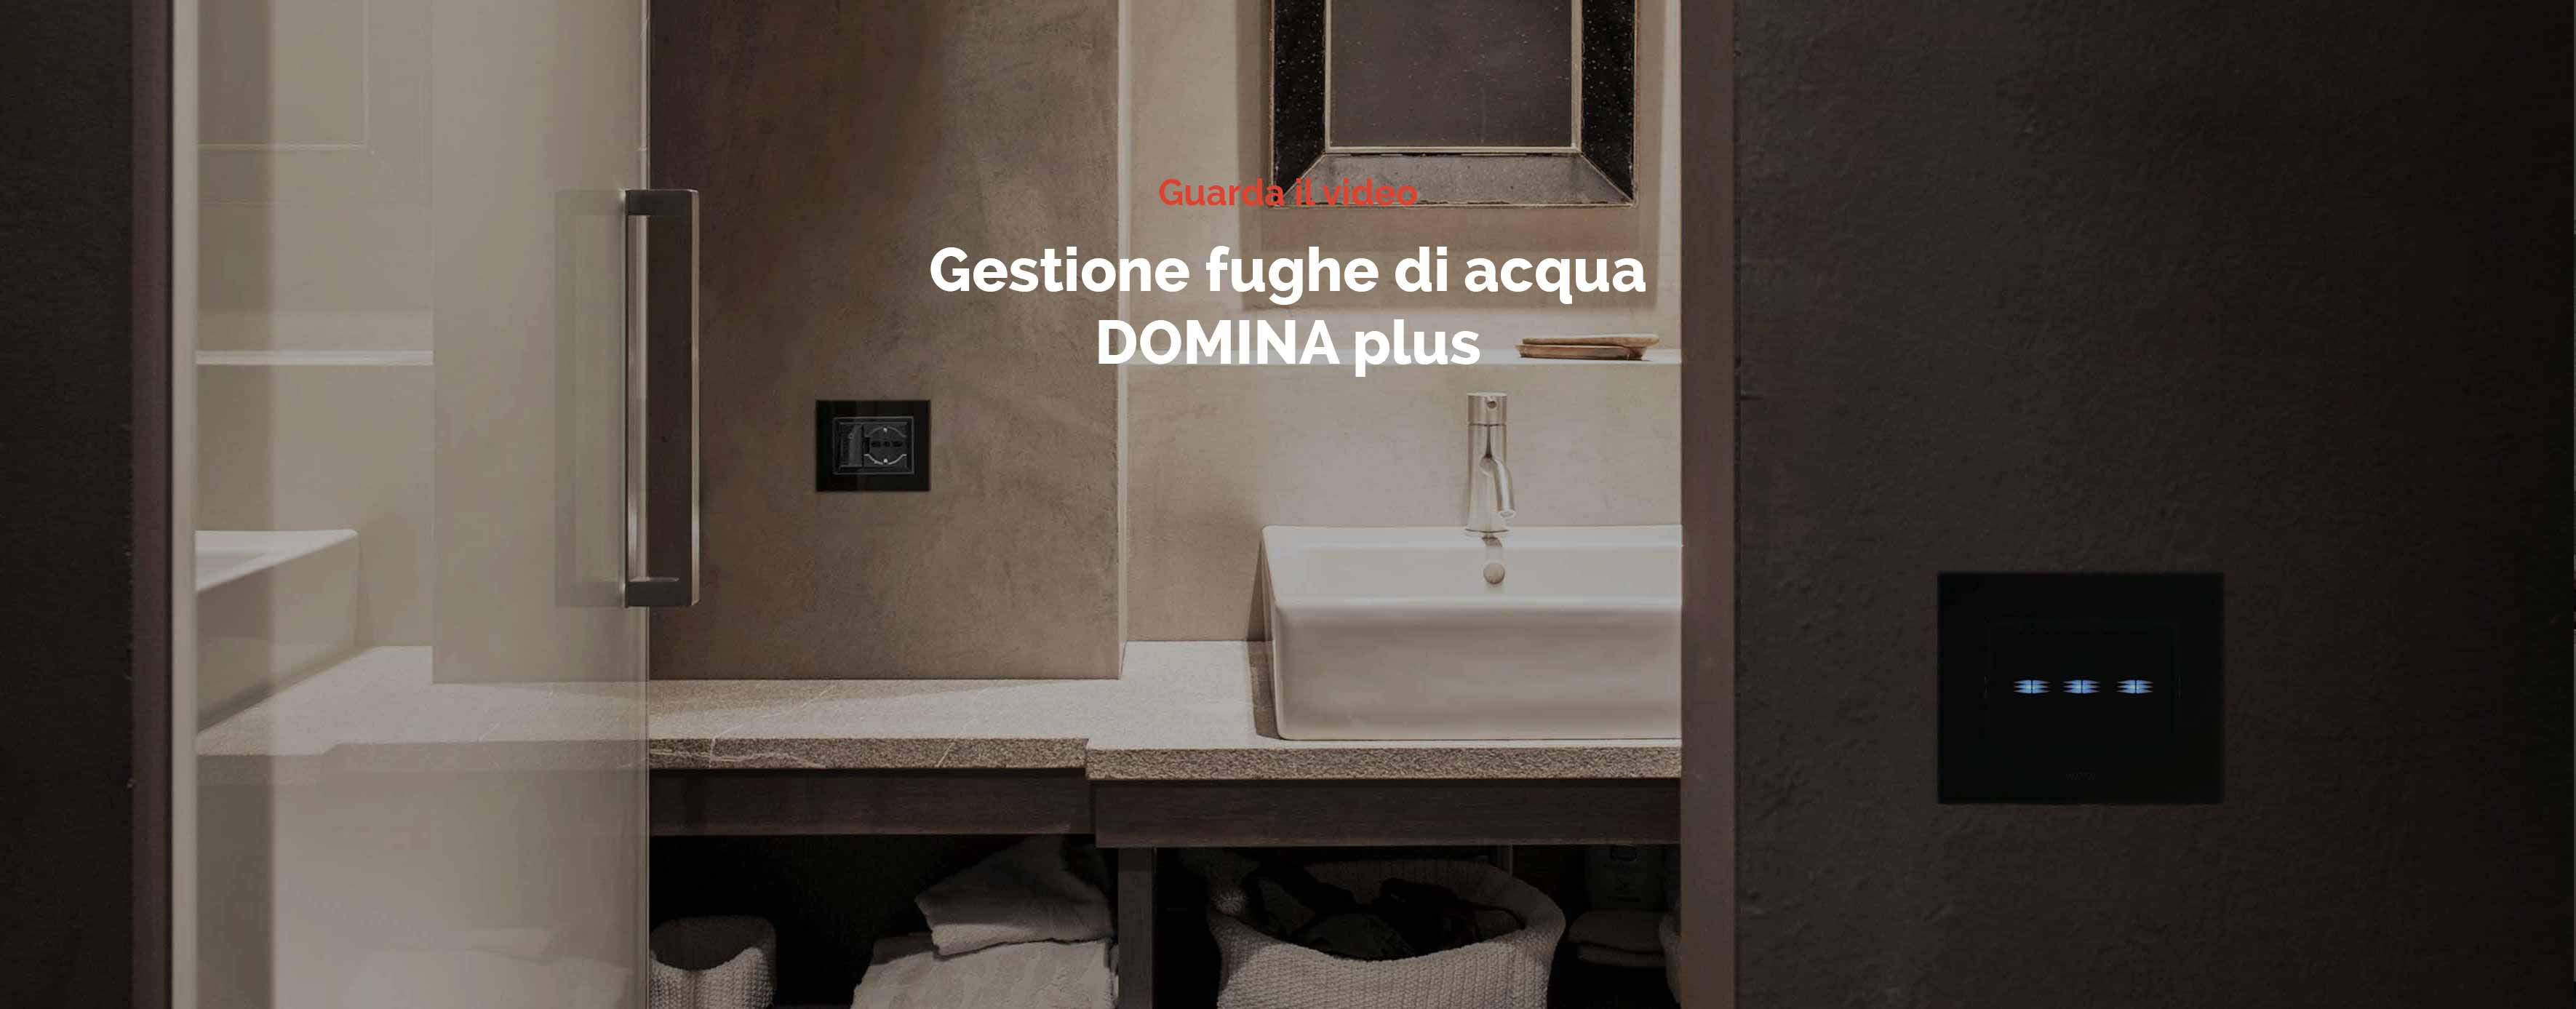 Video Domotica Fughe d'acqua - Ave Domina Plus